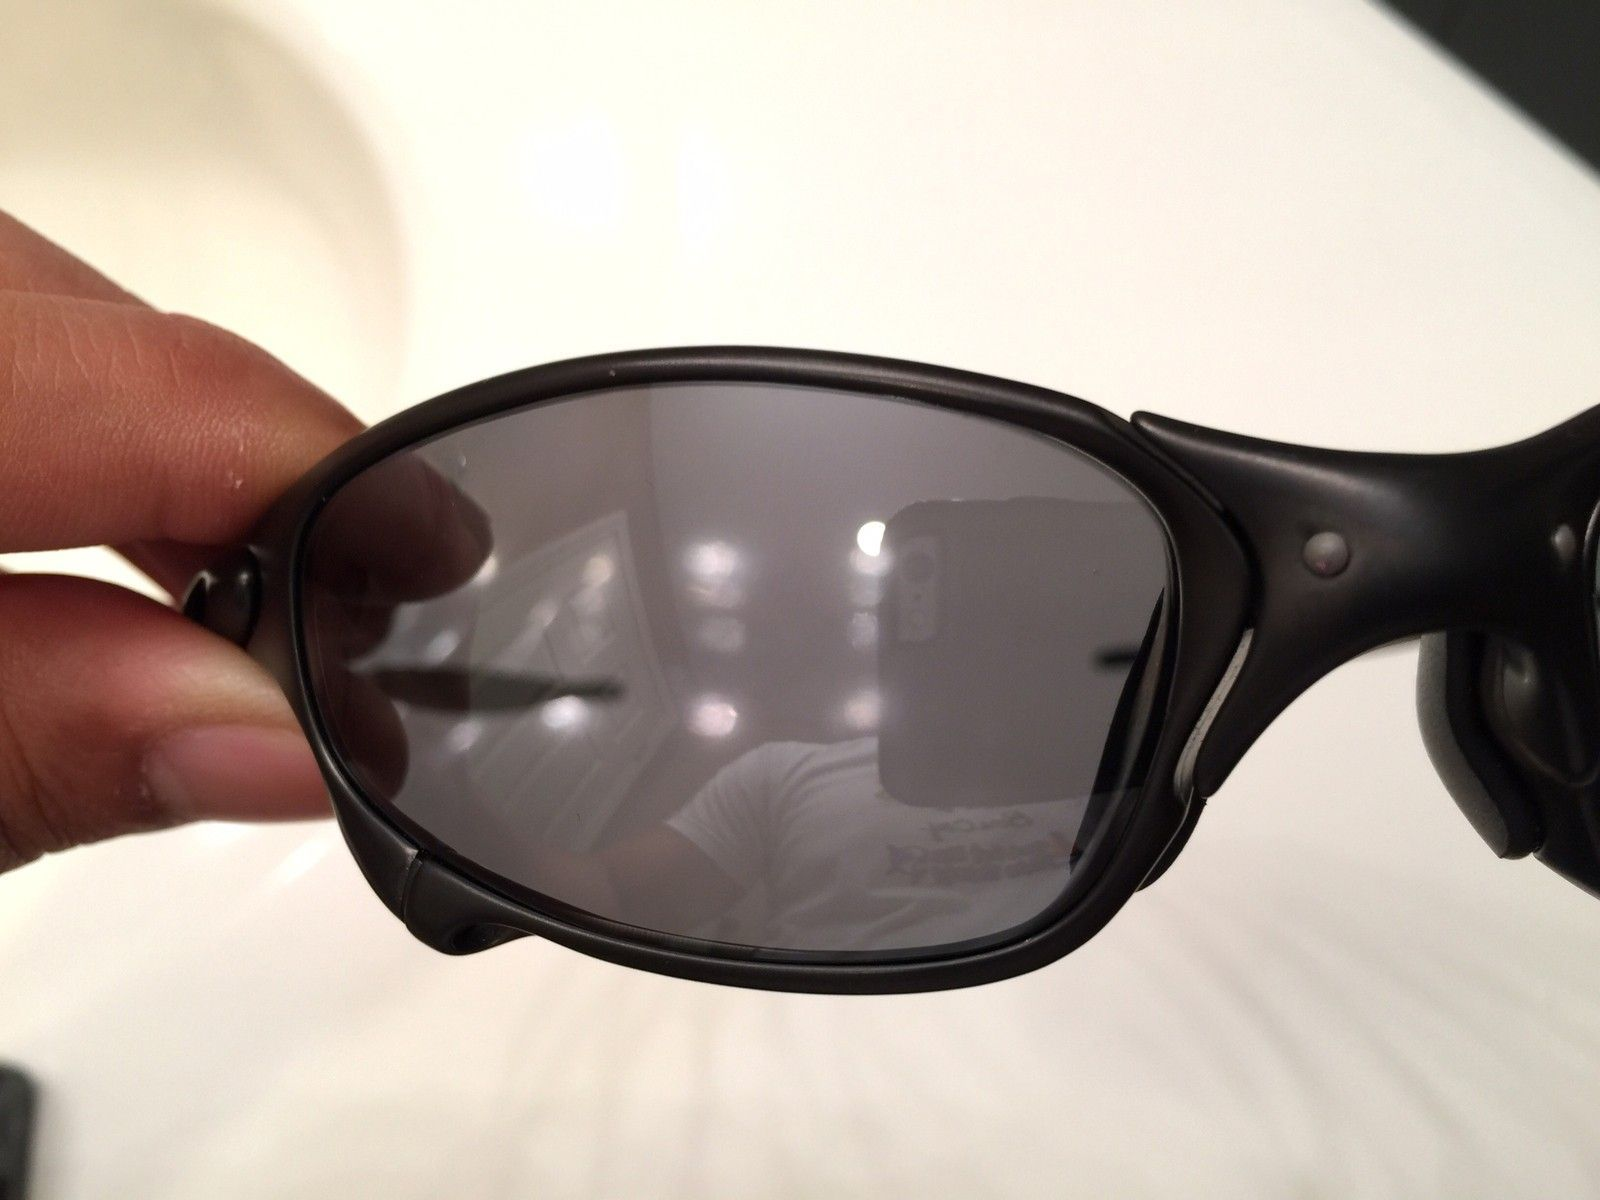 Used XX BI lens ***price dropped*** - IMG_1659.JPG